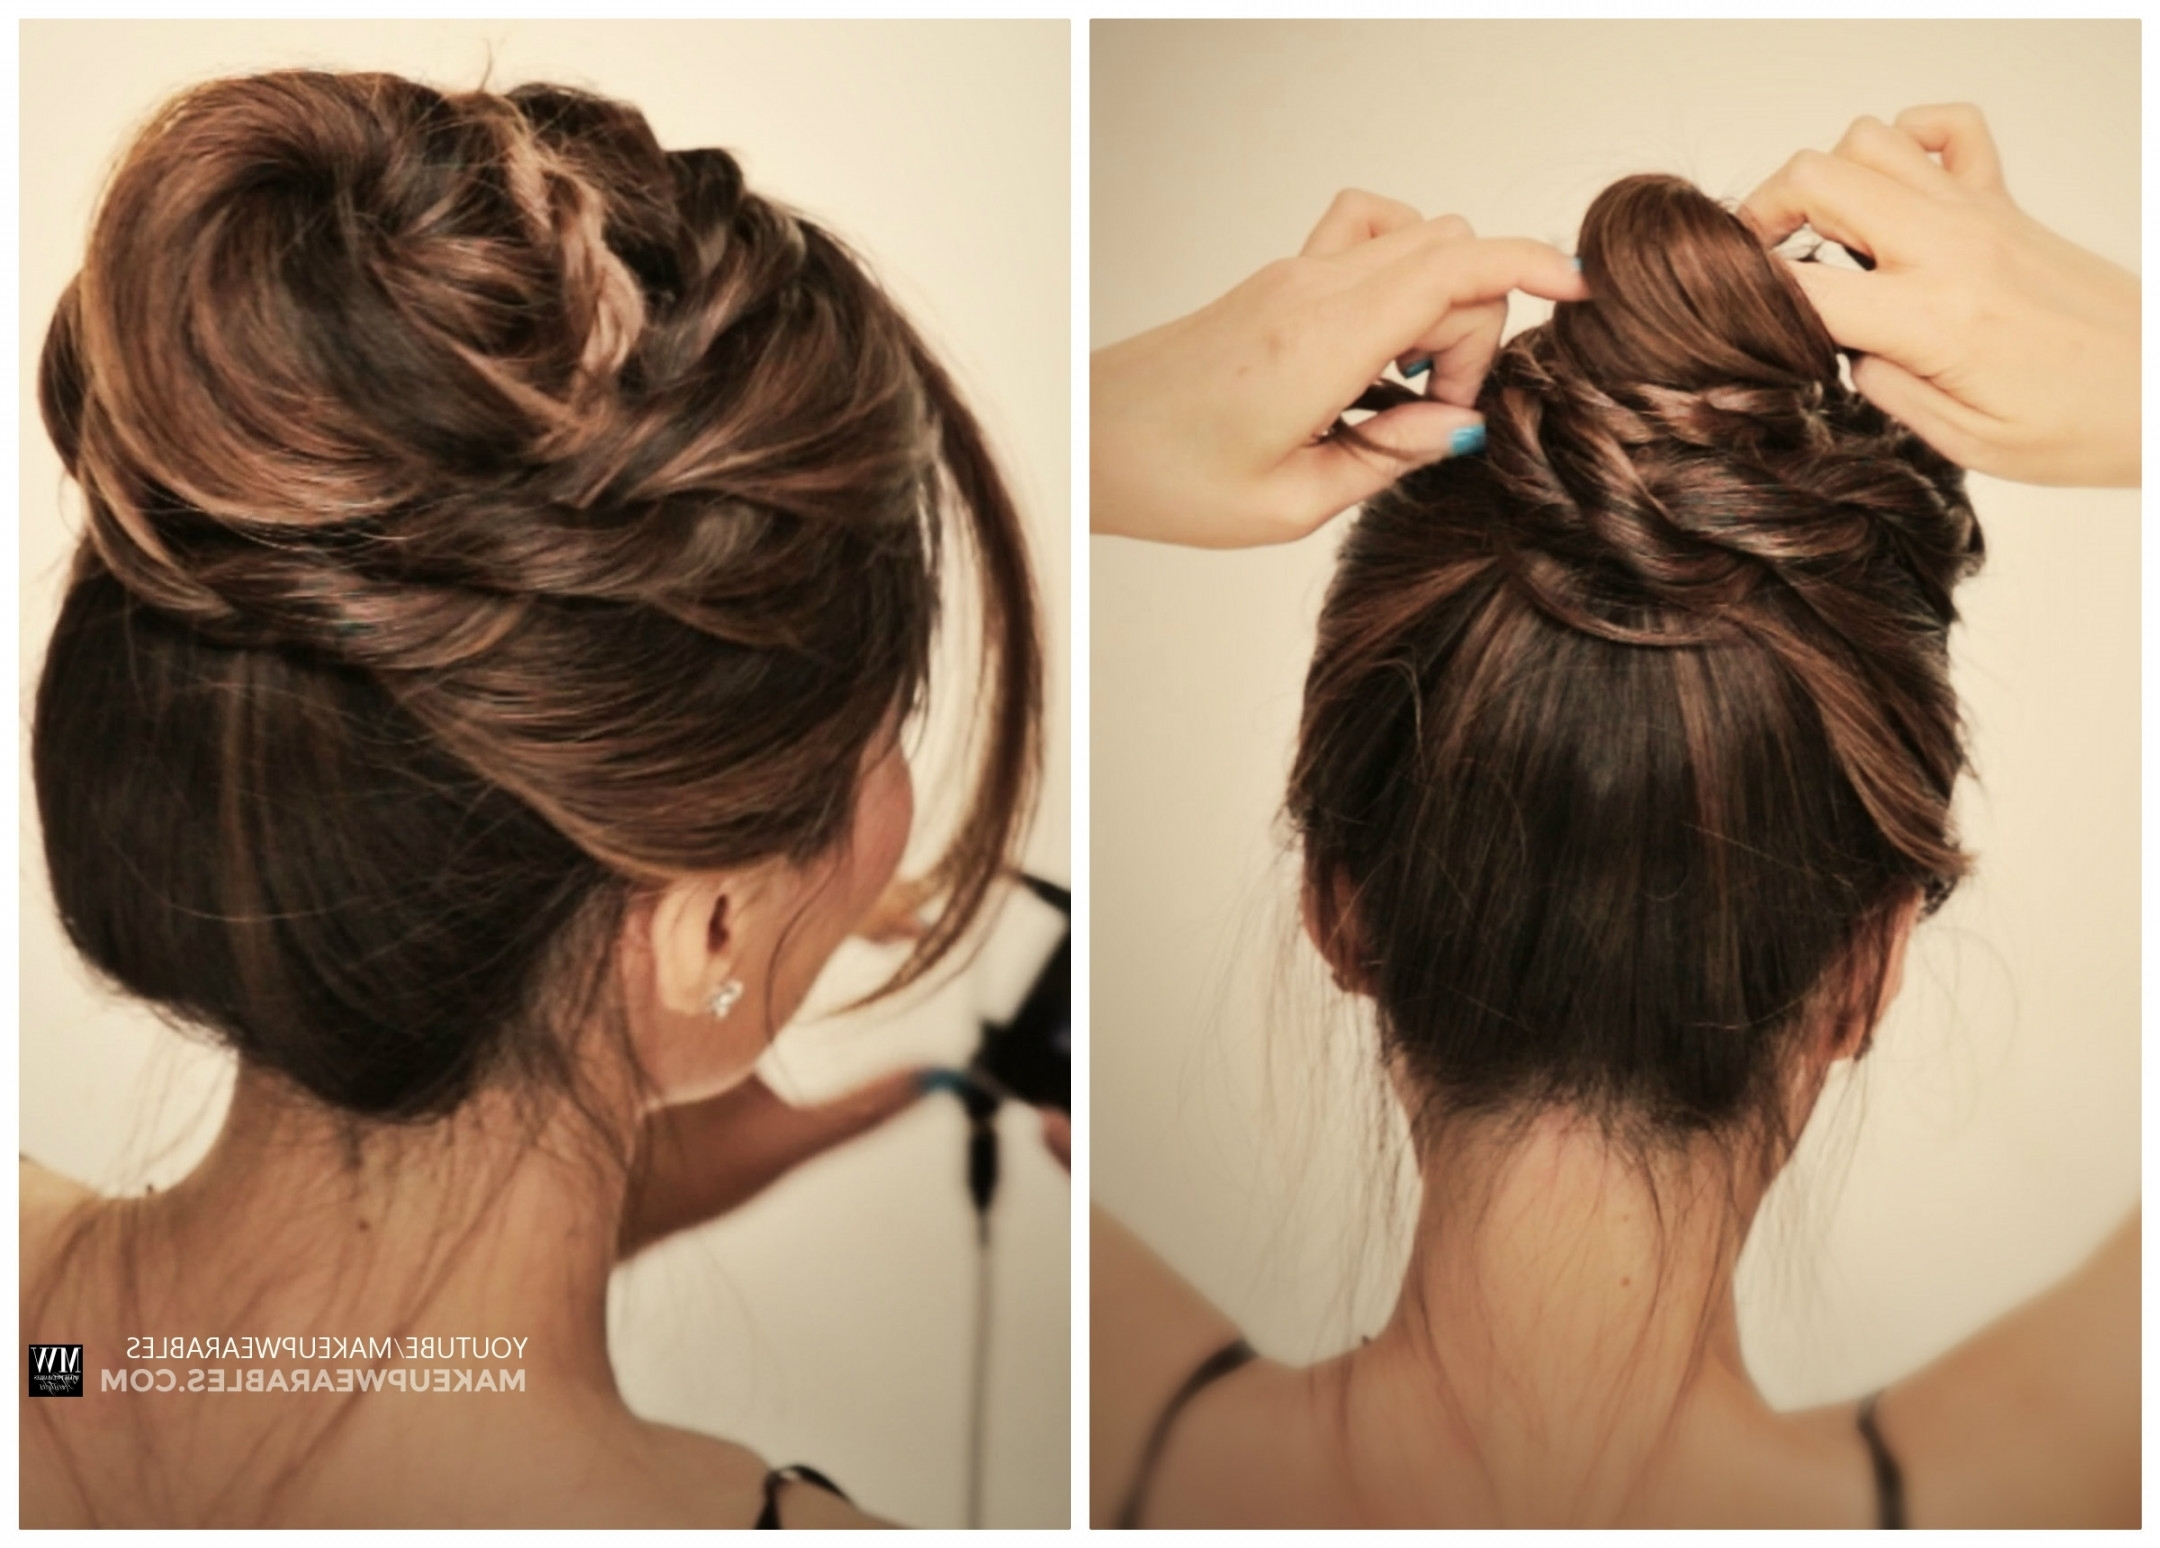 Cute Messy Bun Braids Ballerina Twisted Updo Hairstyle | Medium Throughout Messy Hair Updo Hairstyles For Long Hair (View 3 of 15)